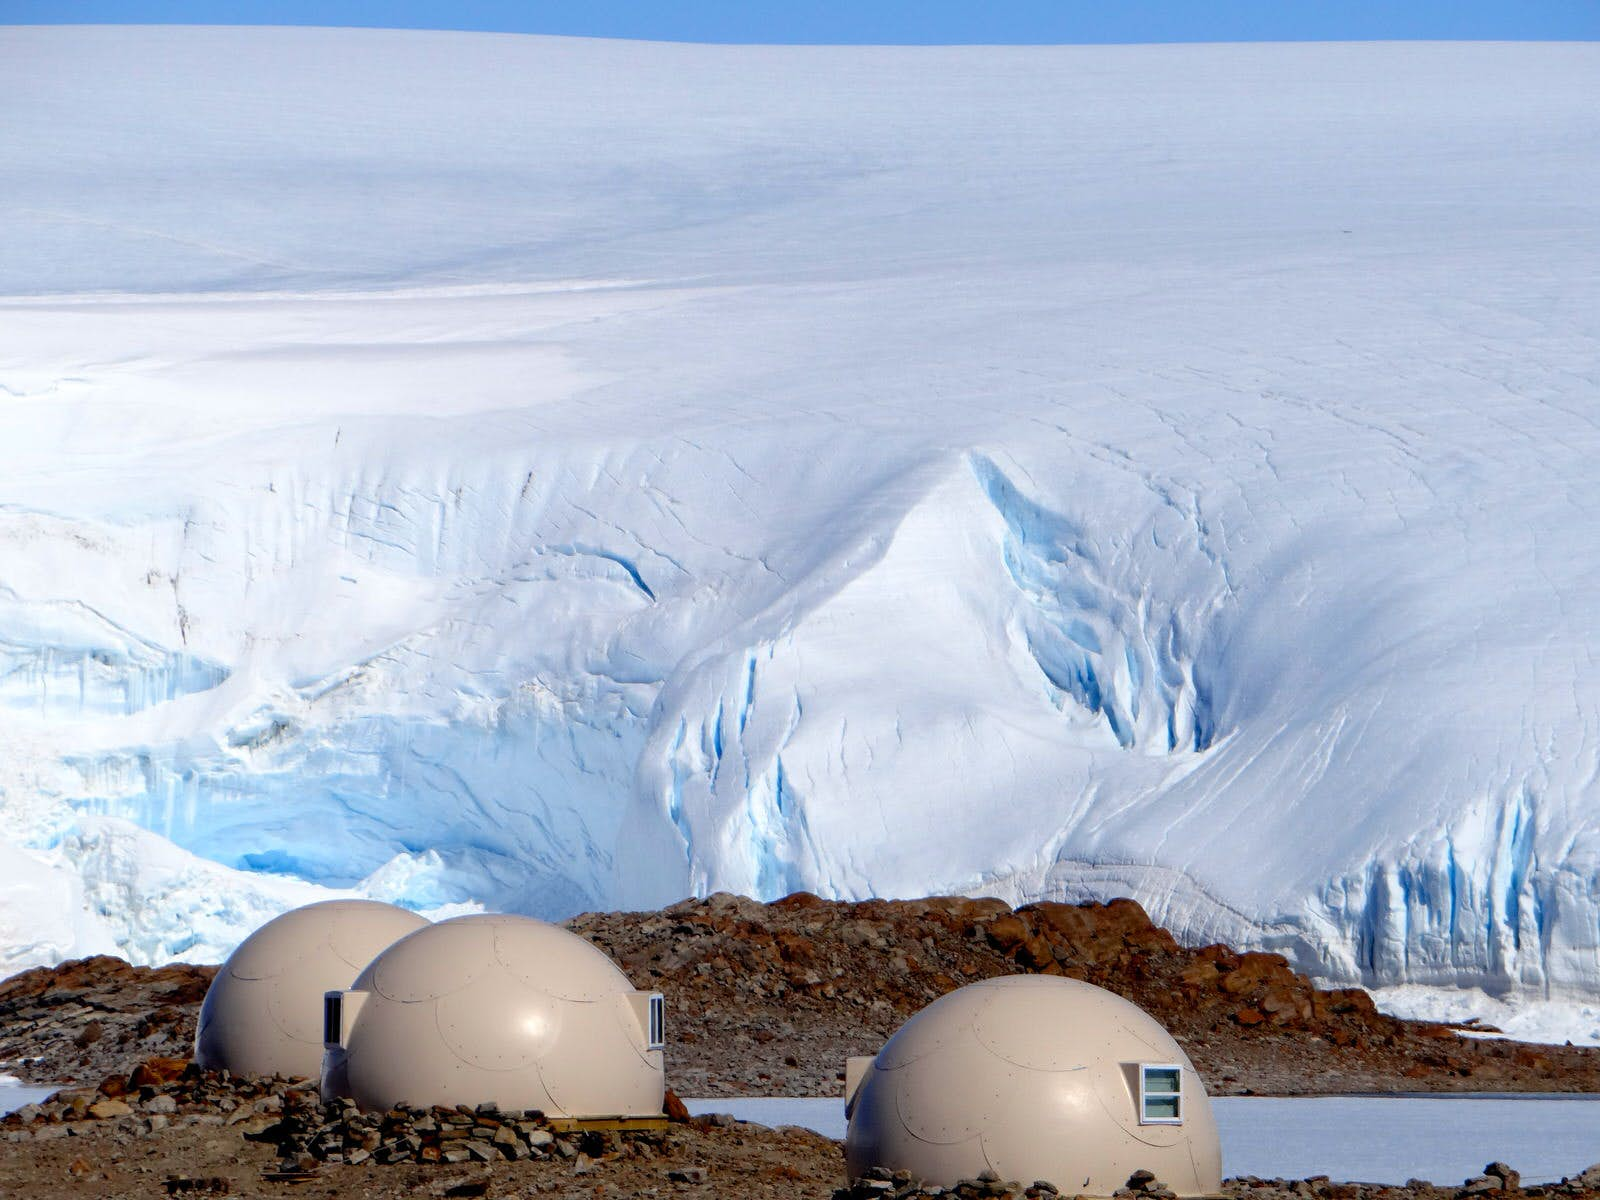 Cream-coloured domes stand in the Antarctica, with huge icebergs in the background.